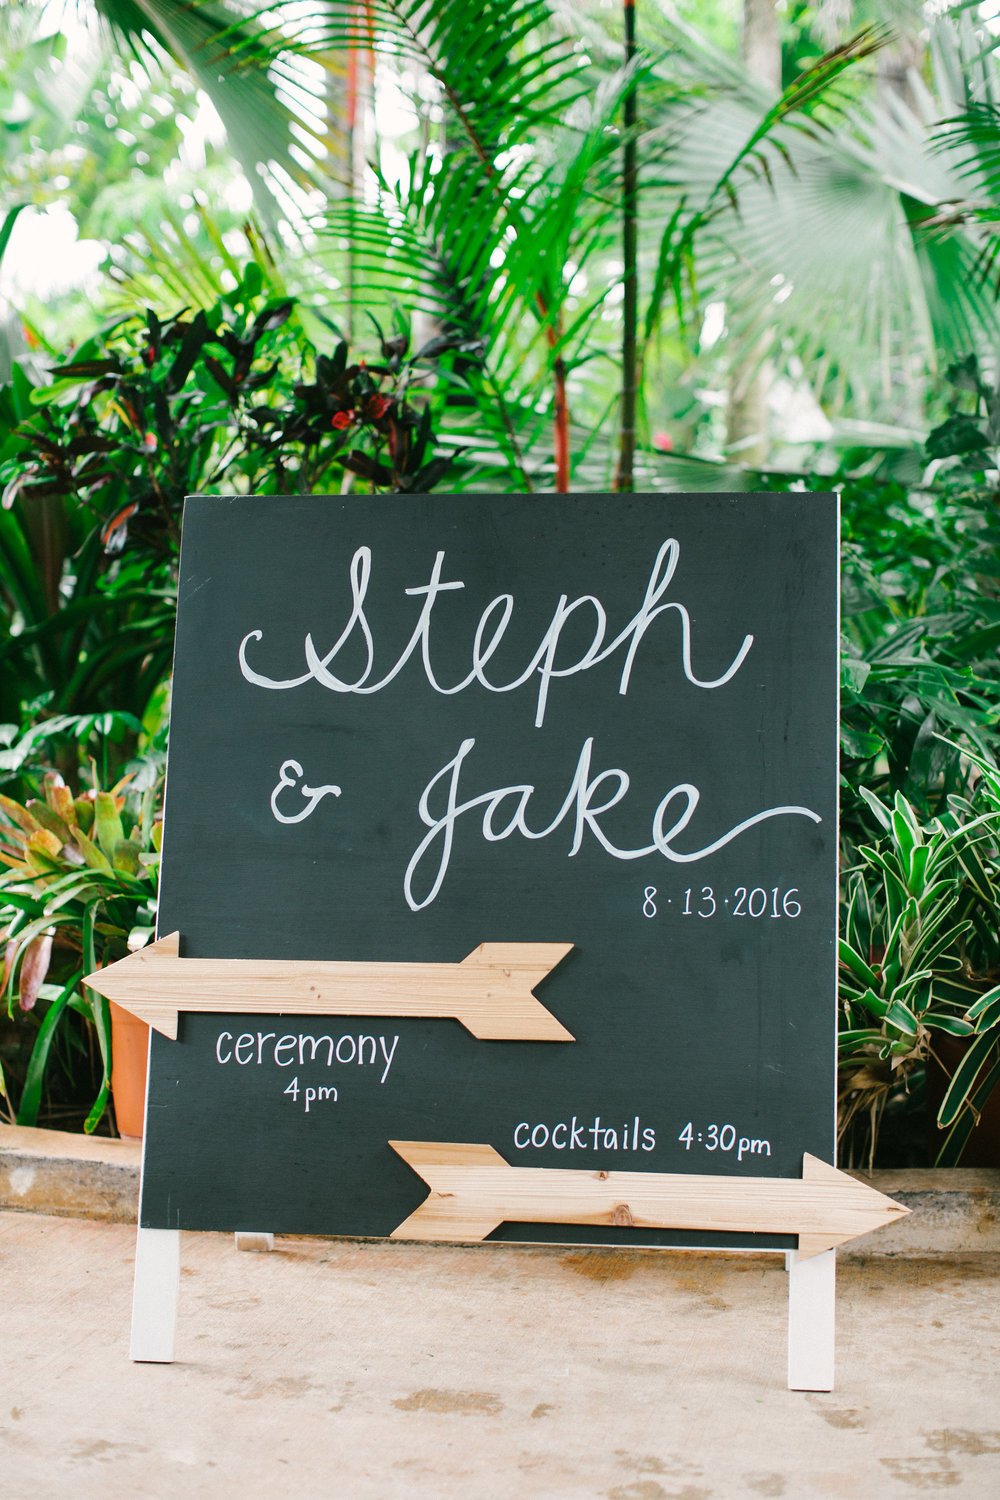 Stephanie+Jake-244.jpg